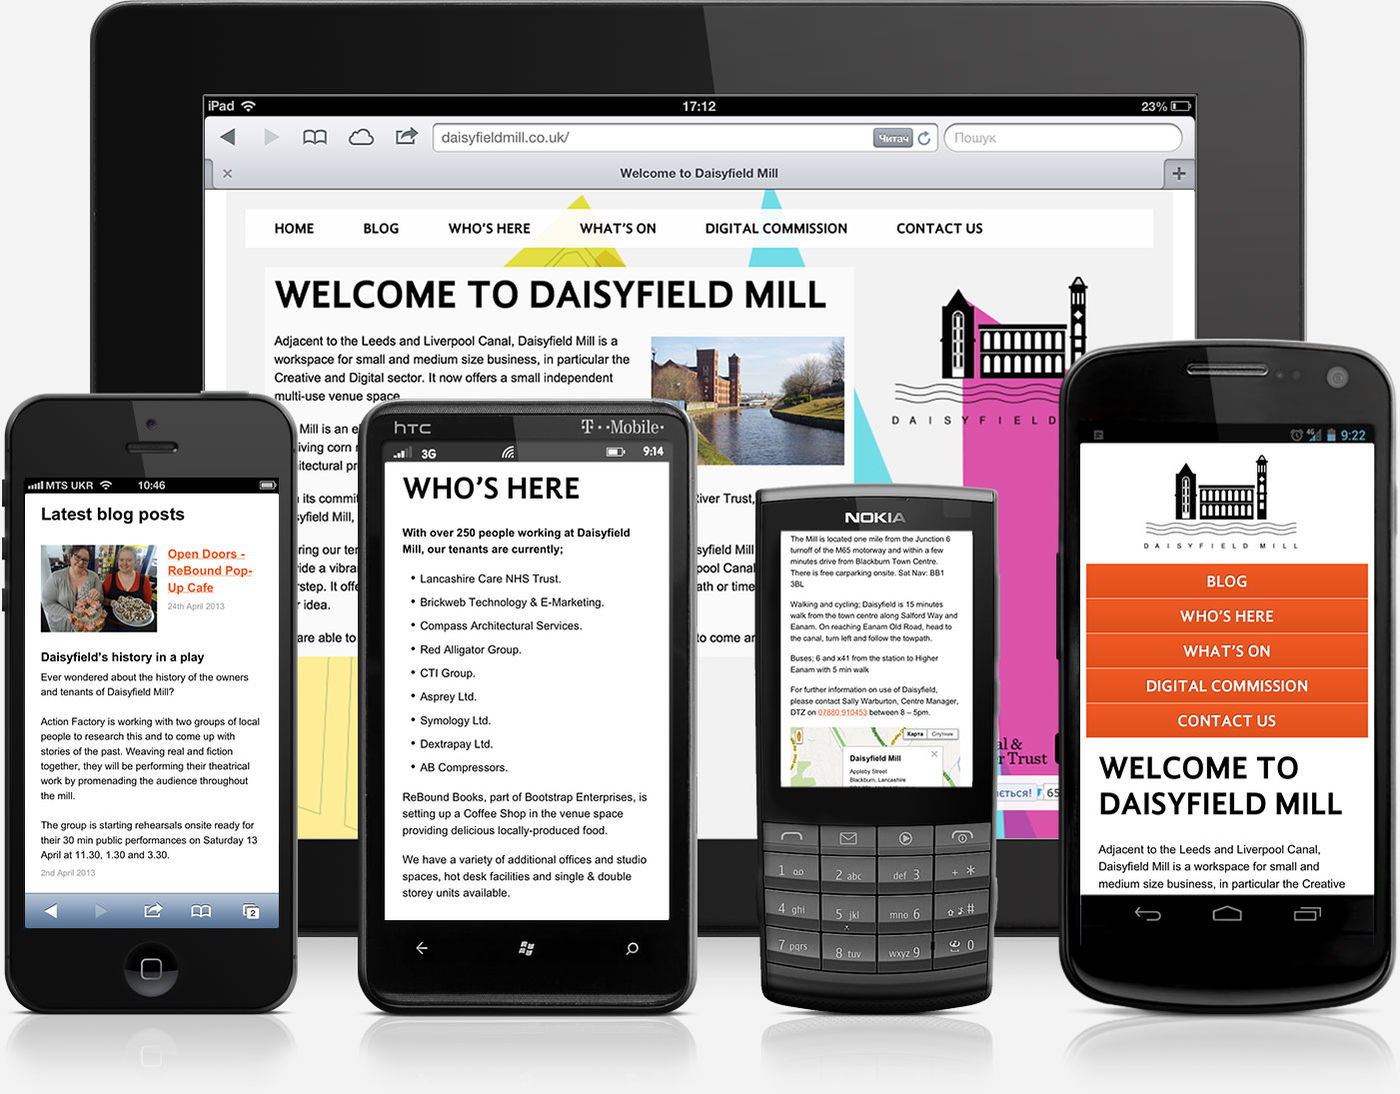 Daisyfield Mill Mobile Version